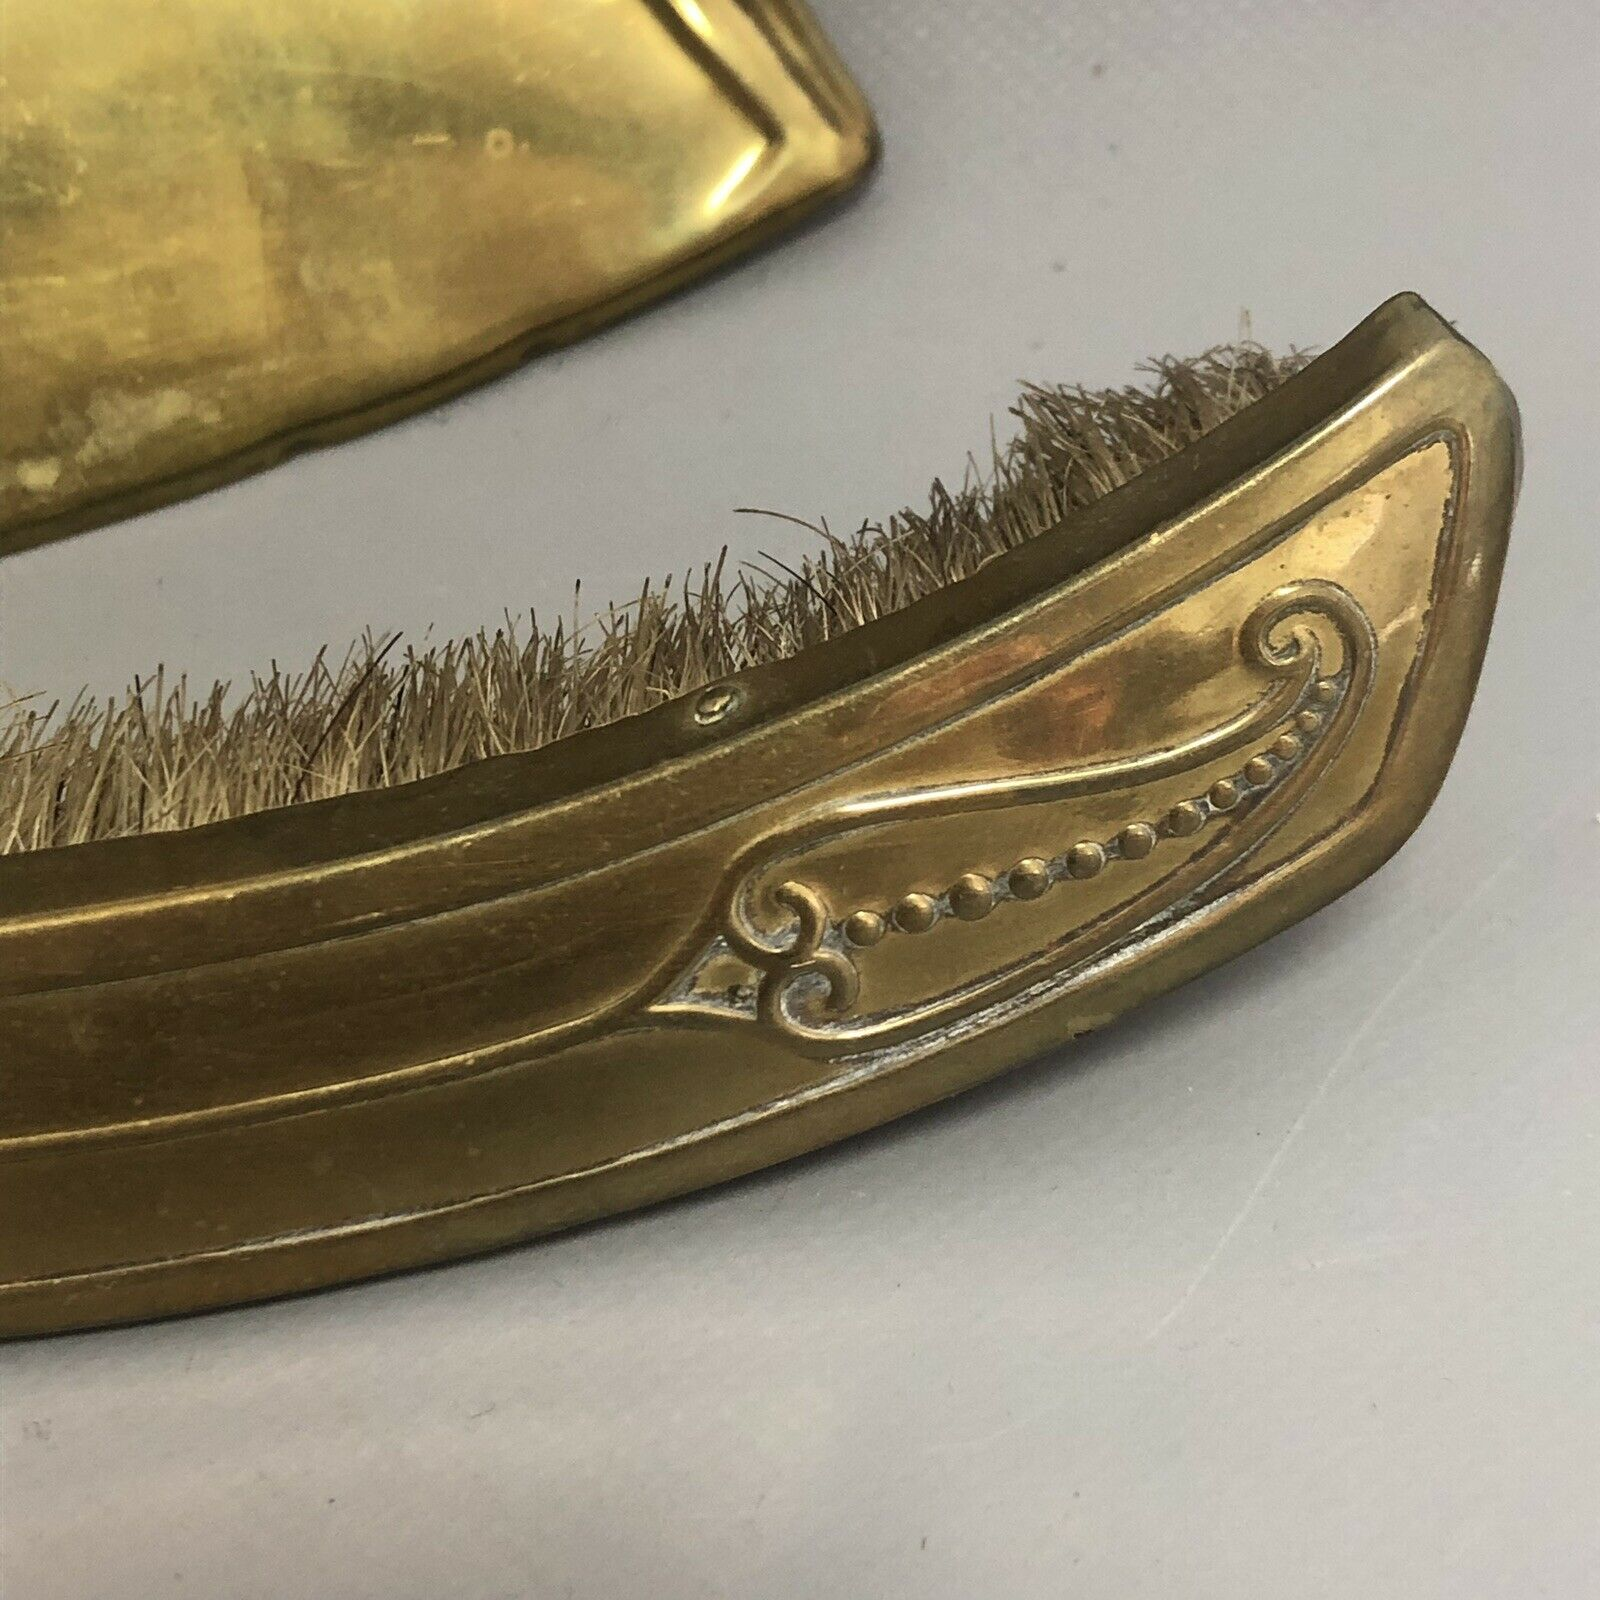 Lot 4 - Antique Edwardian Arts and Crafts Art Nouveau Brass Crumb Tray & Brush